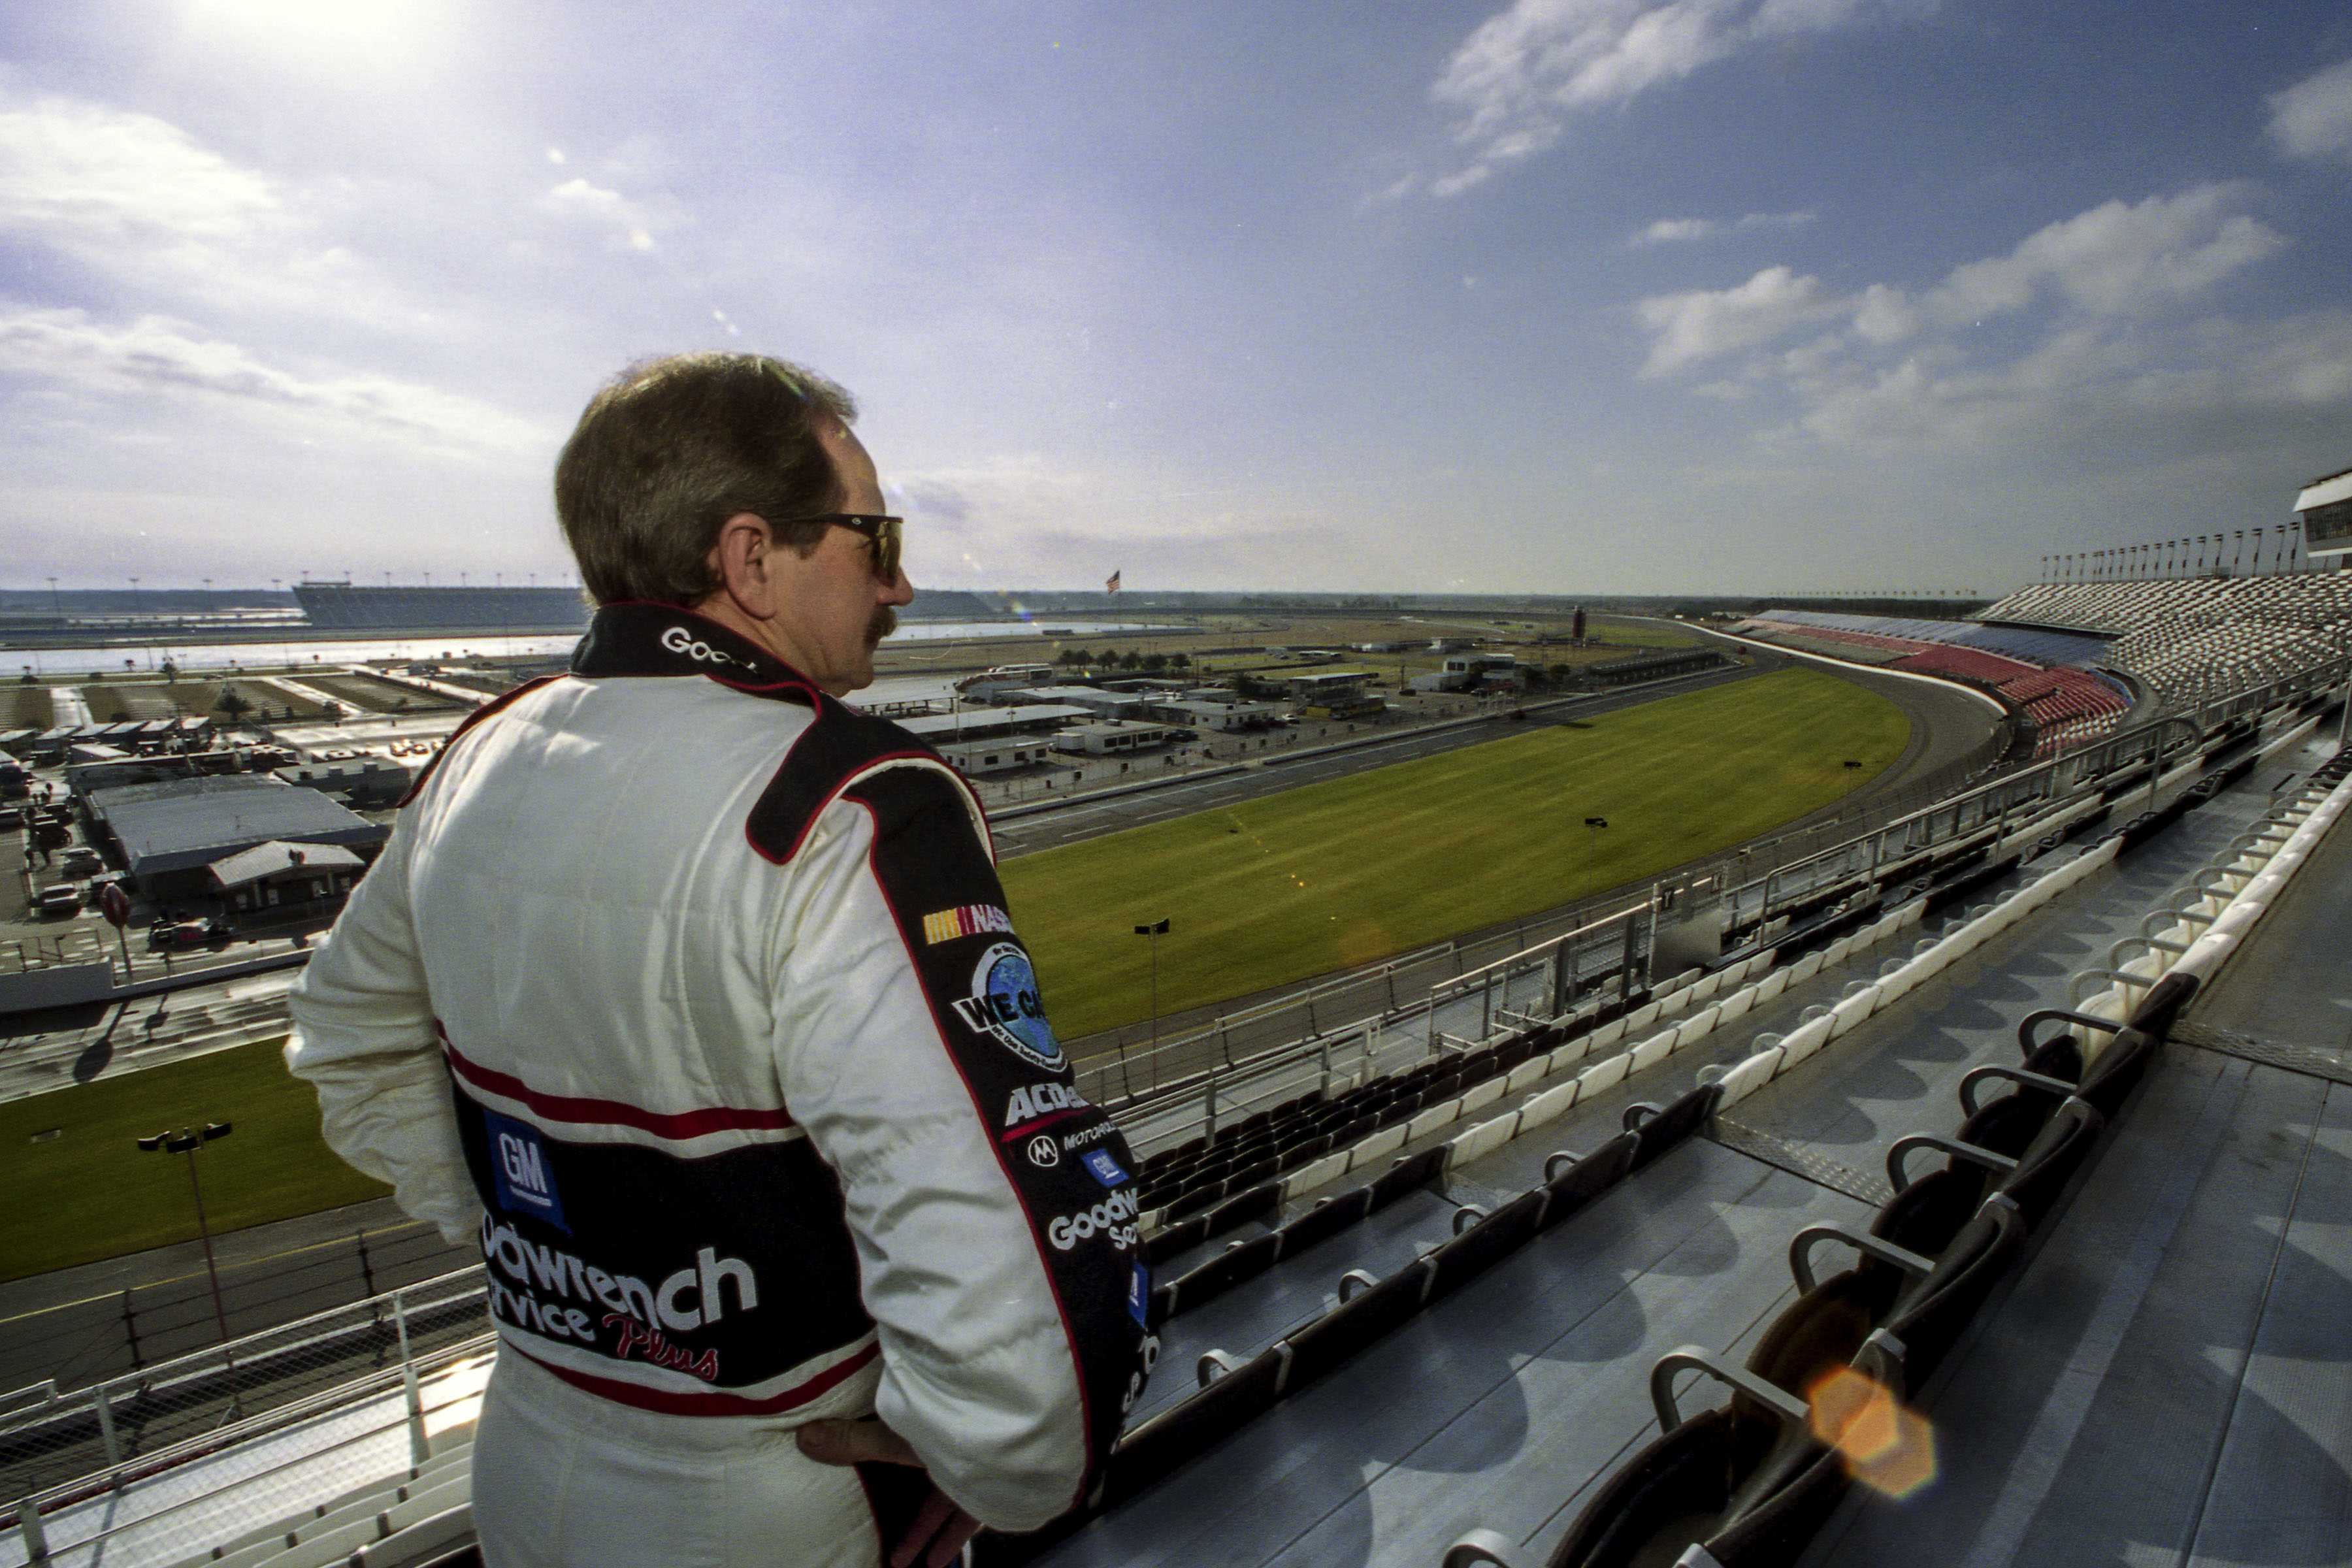 When Dale Earnhardt Jr. Lost His Father at the 2001 Daytona 500, On-Site EMT Patti Dobler Found Hers